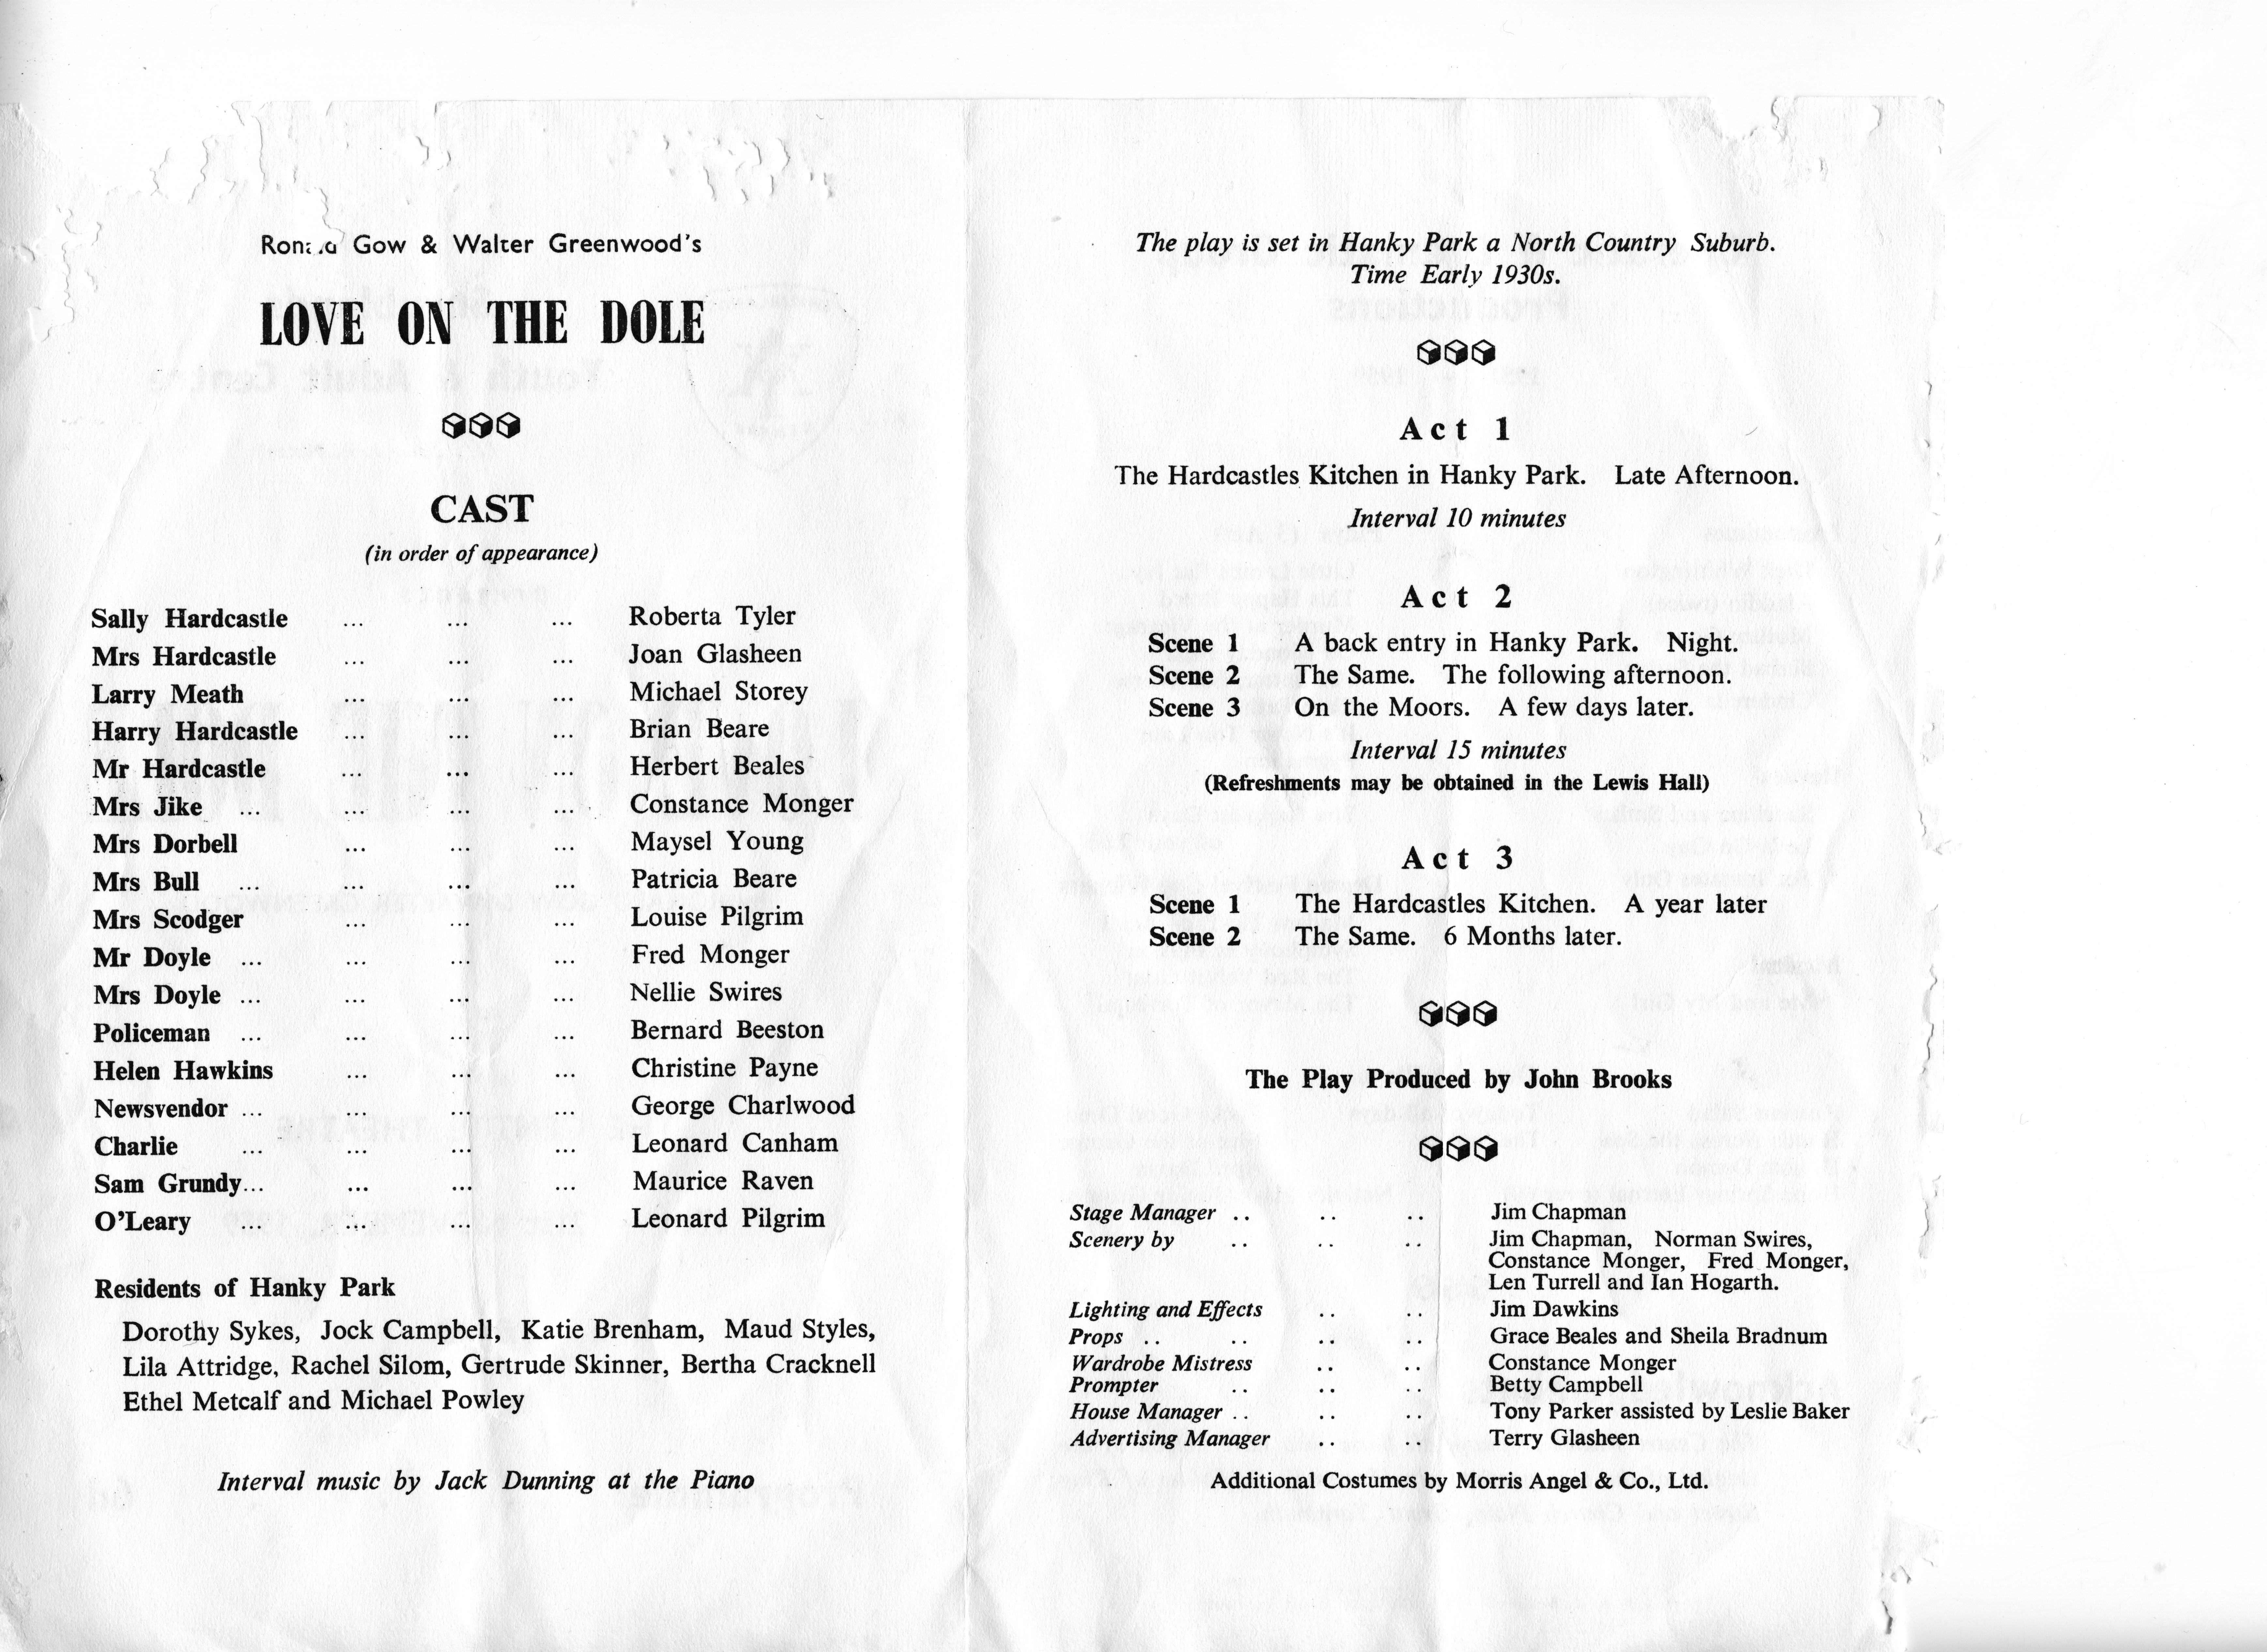 Programme for Love on the Dole theatre group production